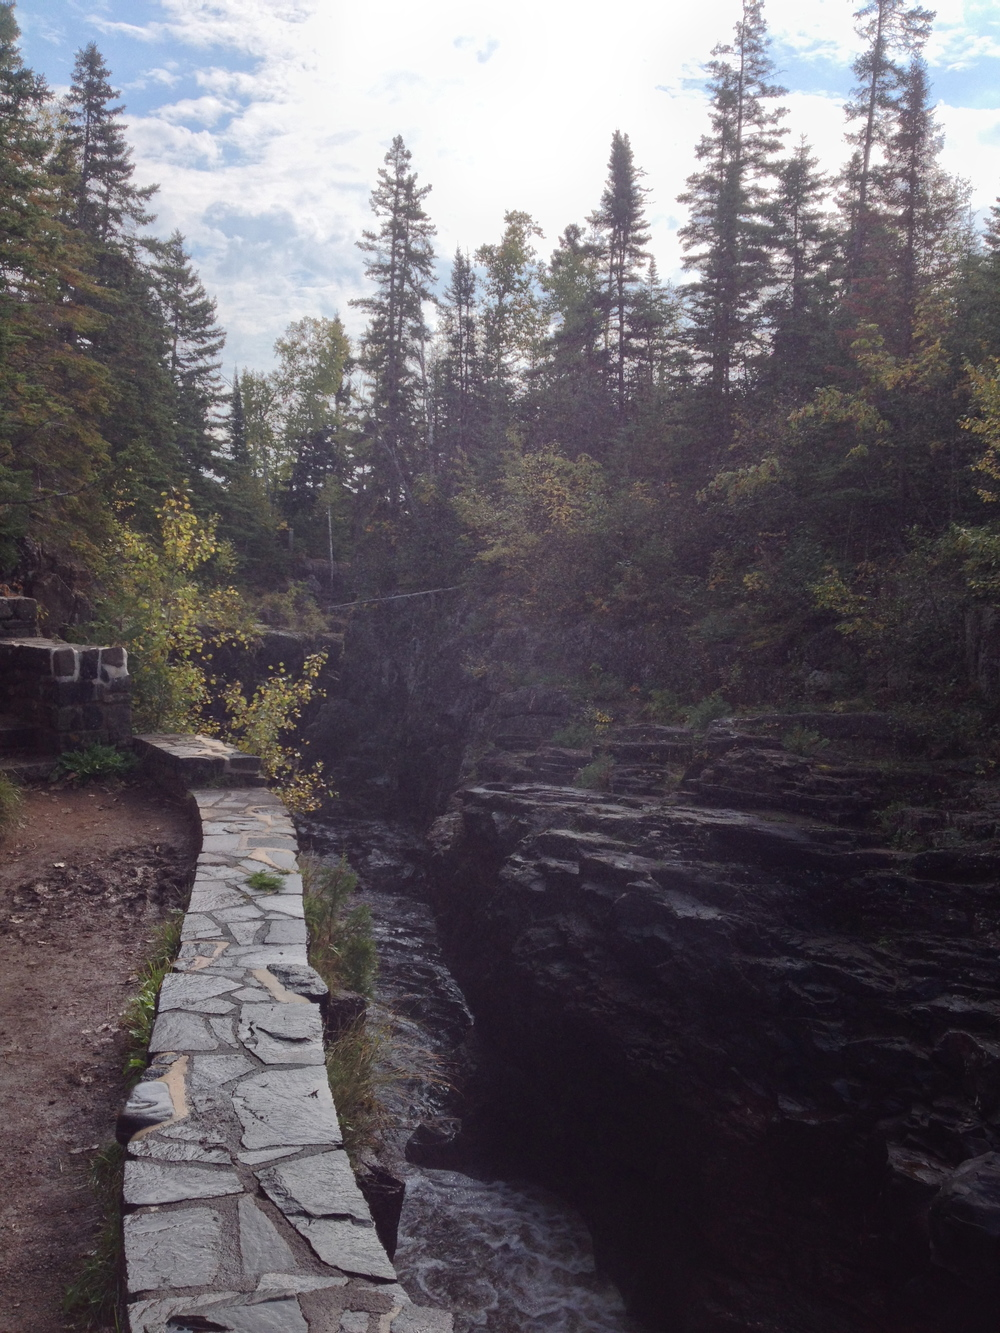 Cliffs and forest at Temperance River State Park